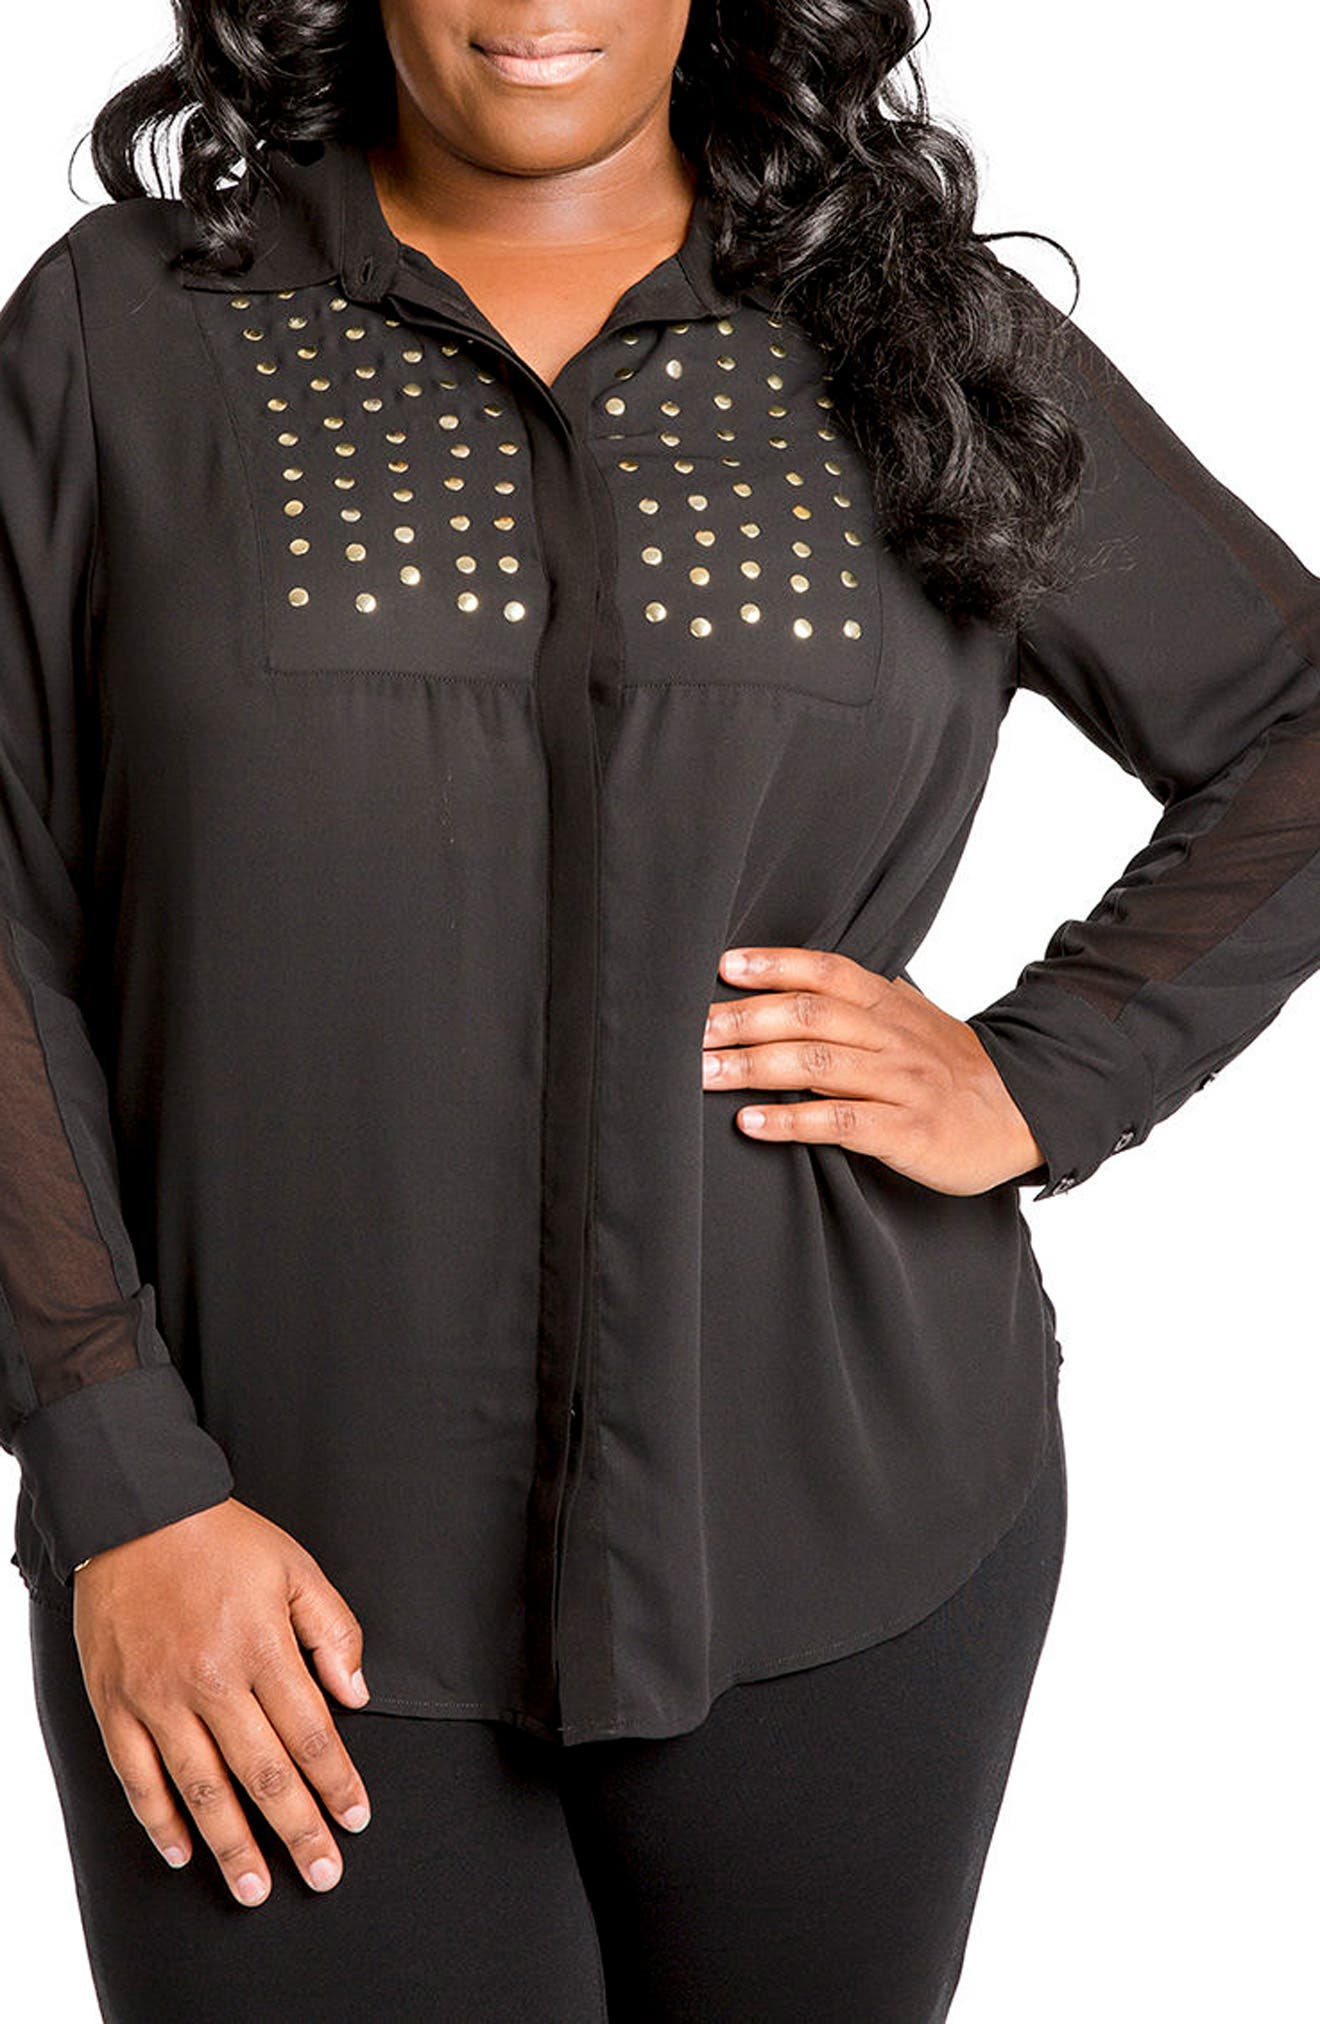 Alternate Image 1 Selected - Poetic Justice Denise Studded Georgette Blouse (Plus Size)